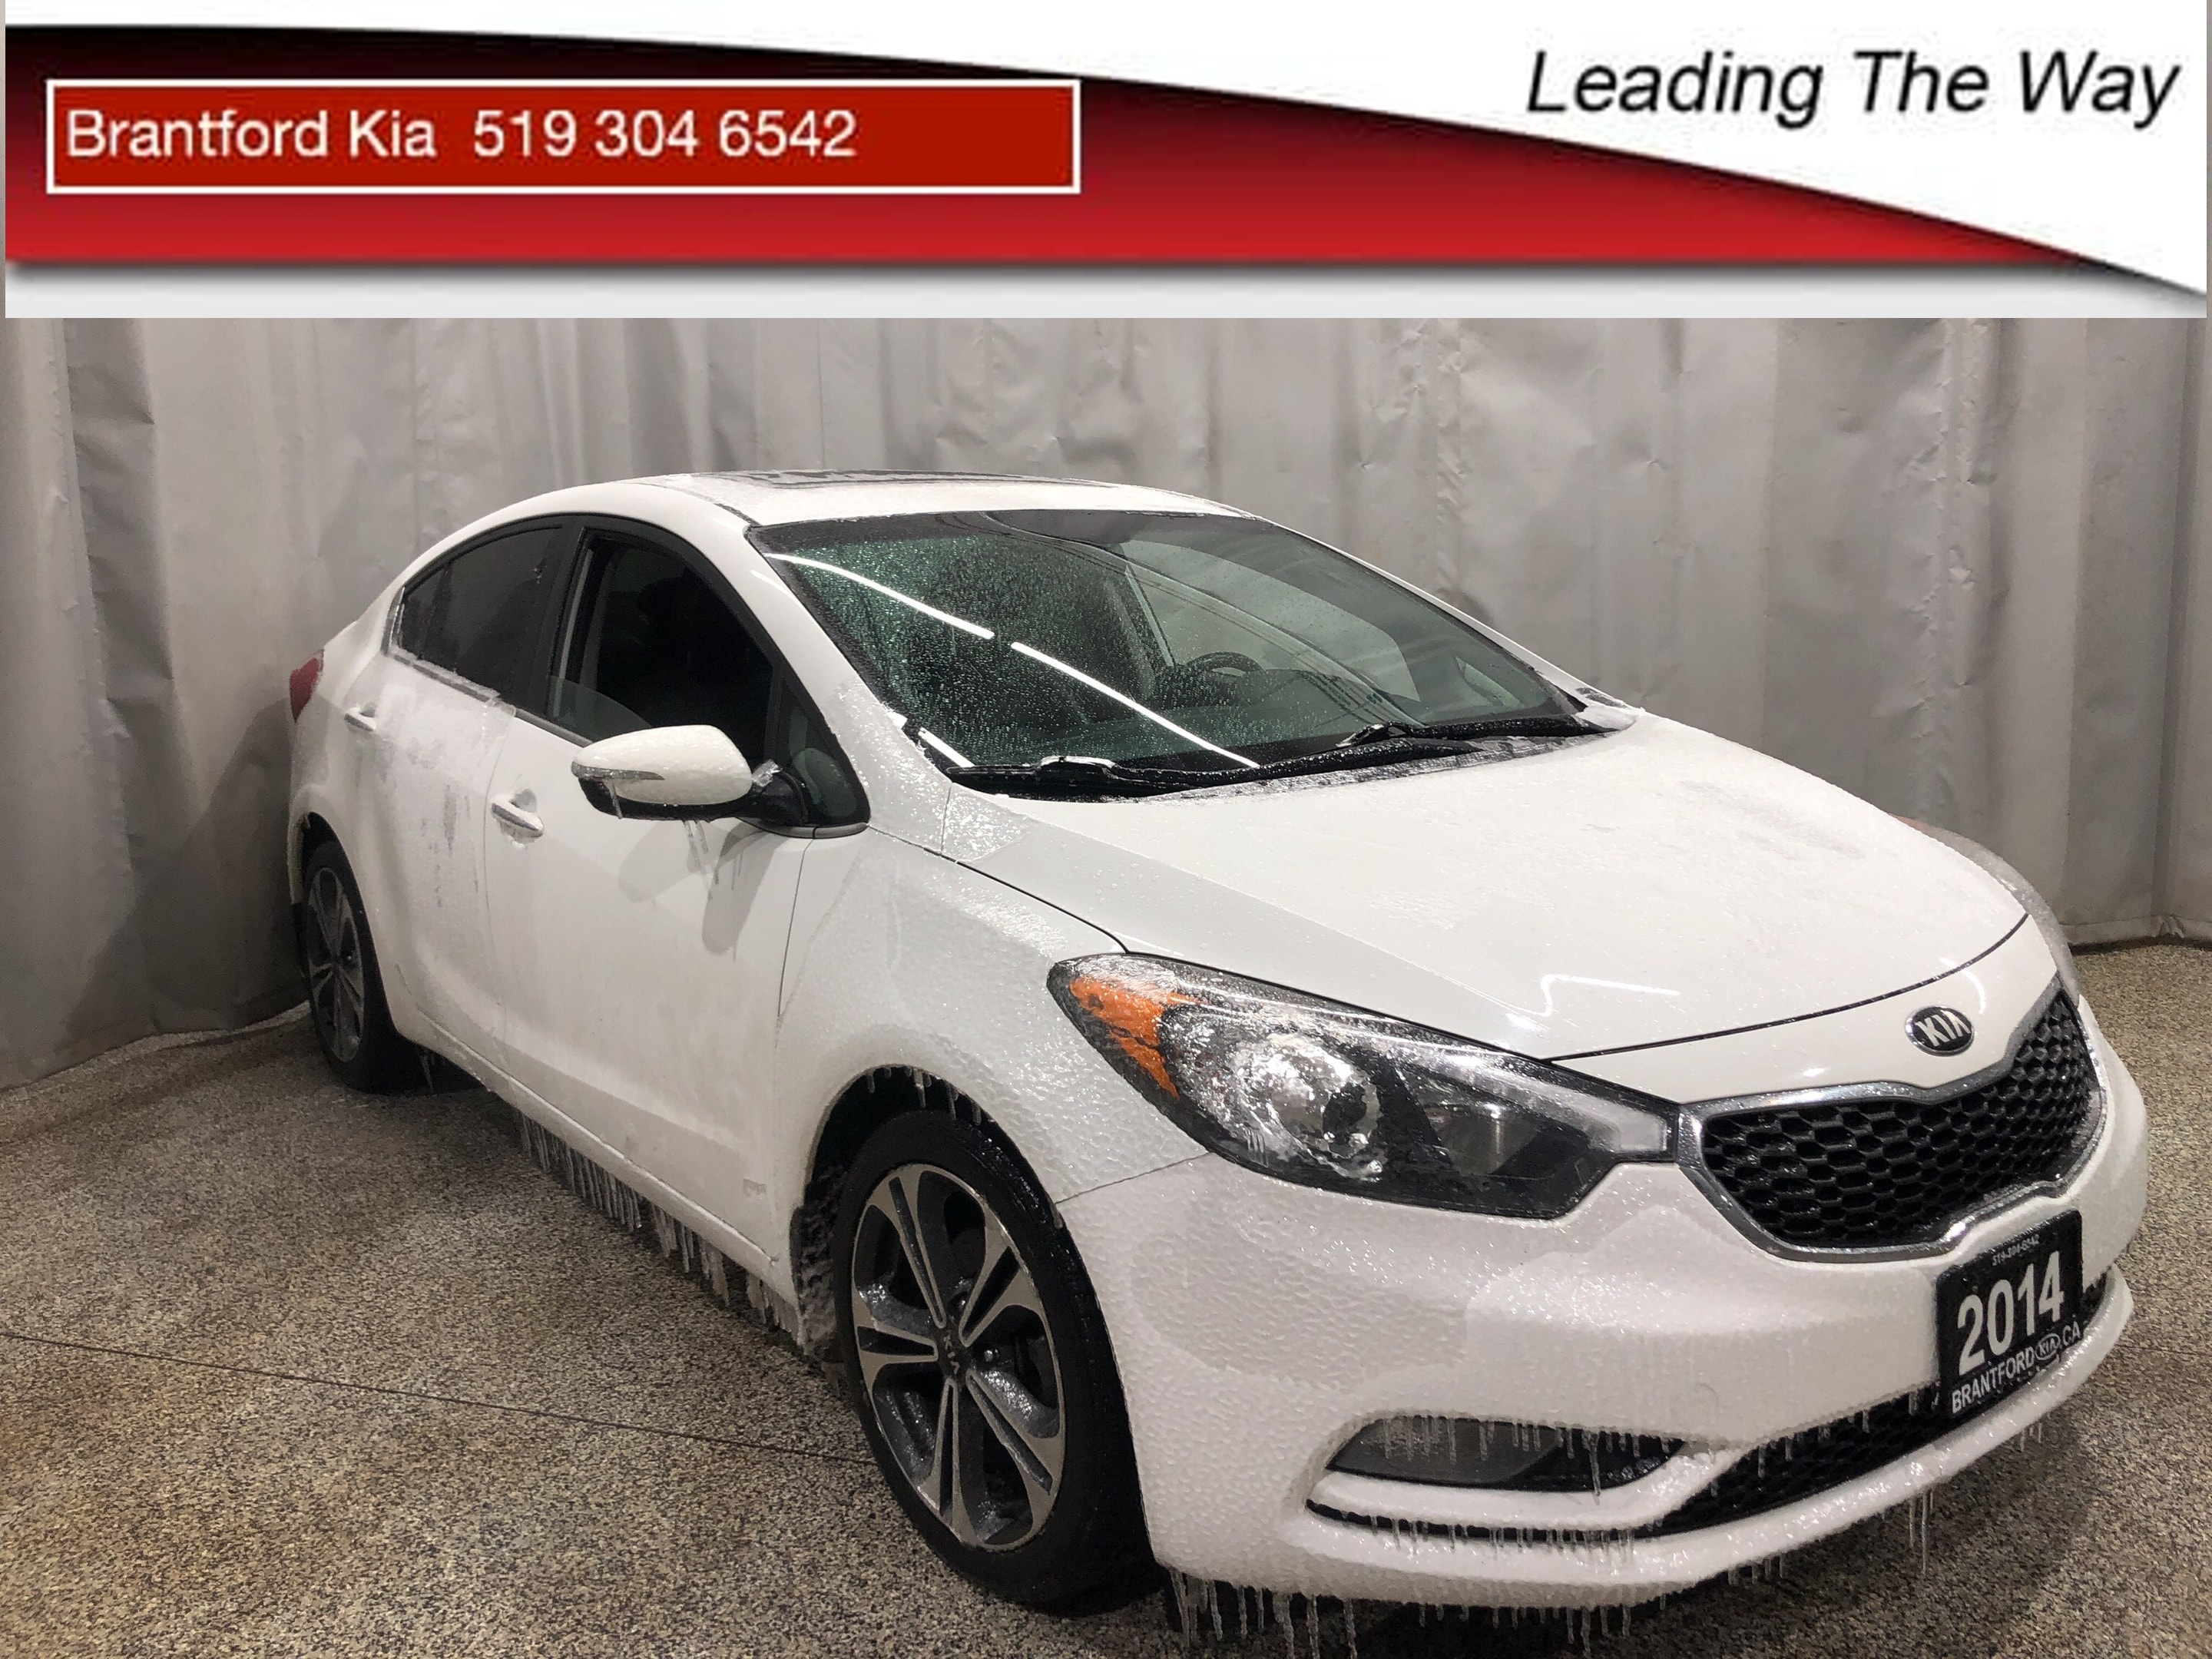 Car Dealership Cars Minivans Suvs Brantford Brantford Kia